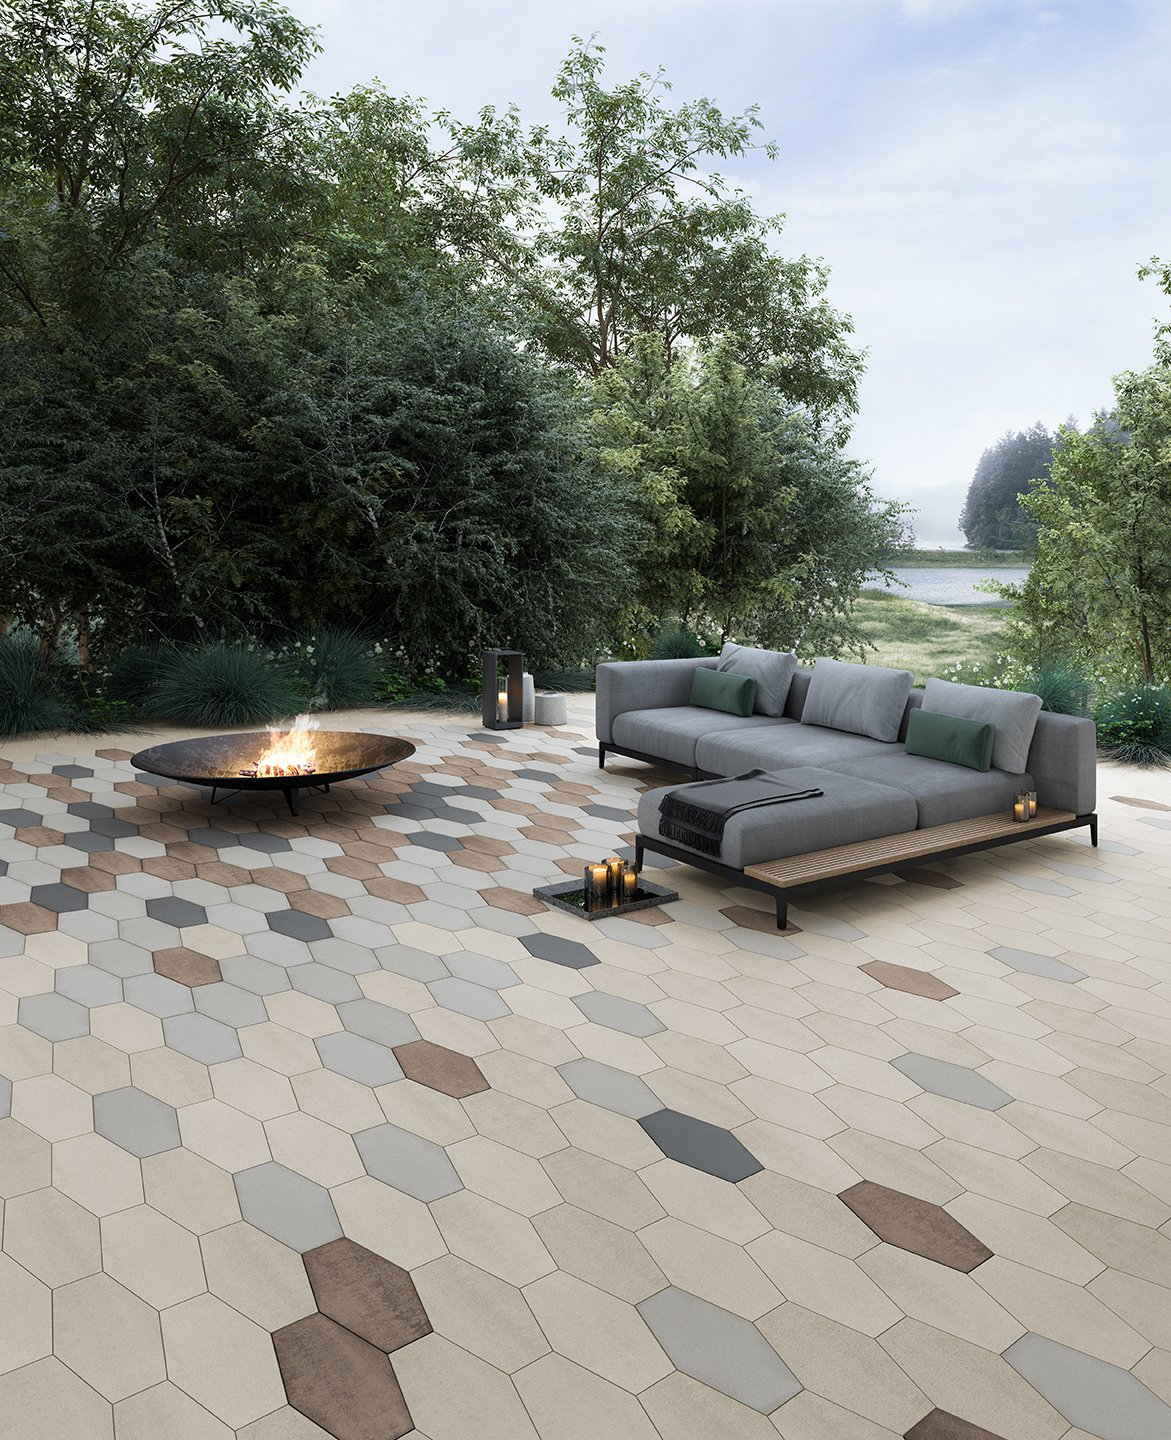 zen_Primer_TechoBloc_Series2019_027_Hexa patio_6K